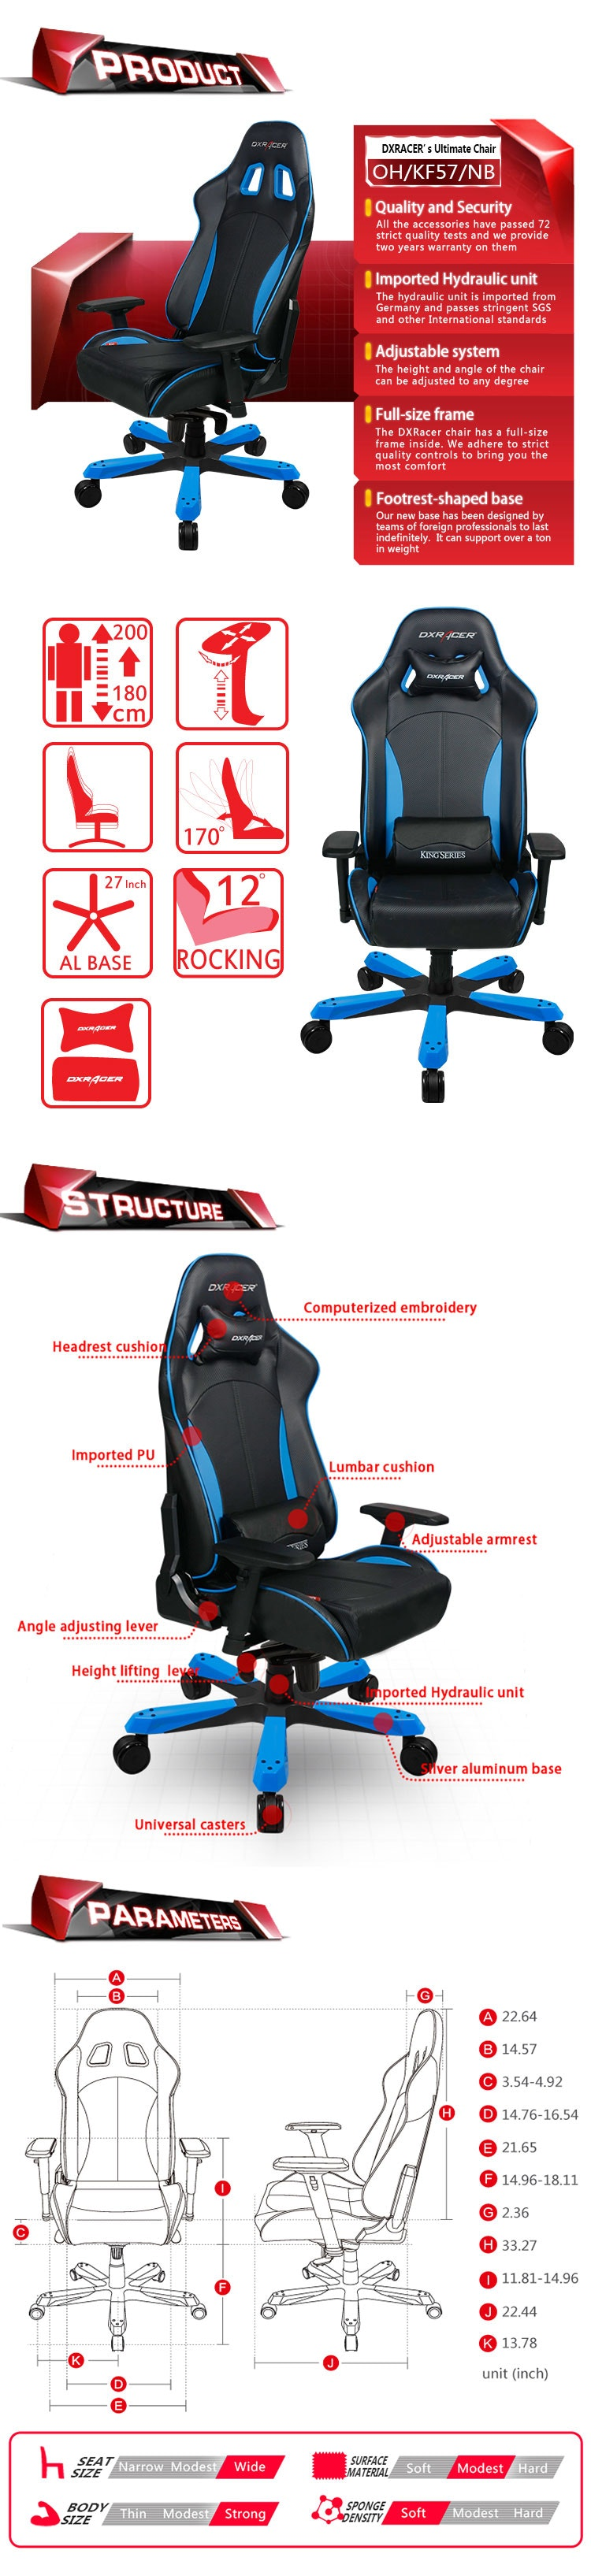 Dxracer Pc Gaming Chair Dxracer King Series Pc Gaming Chair Oh Kf57 Price Reviews